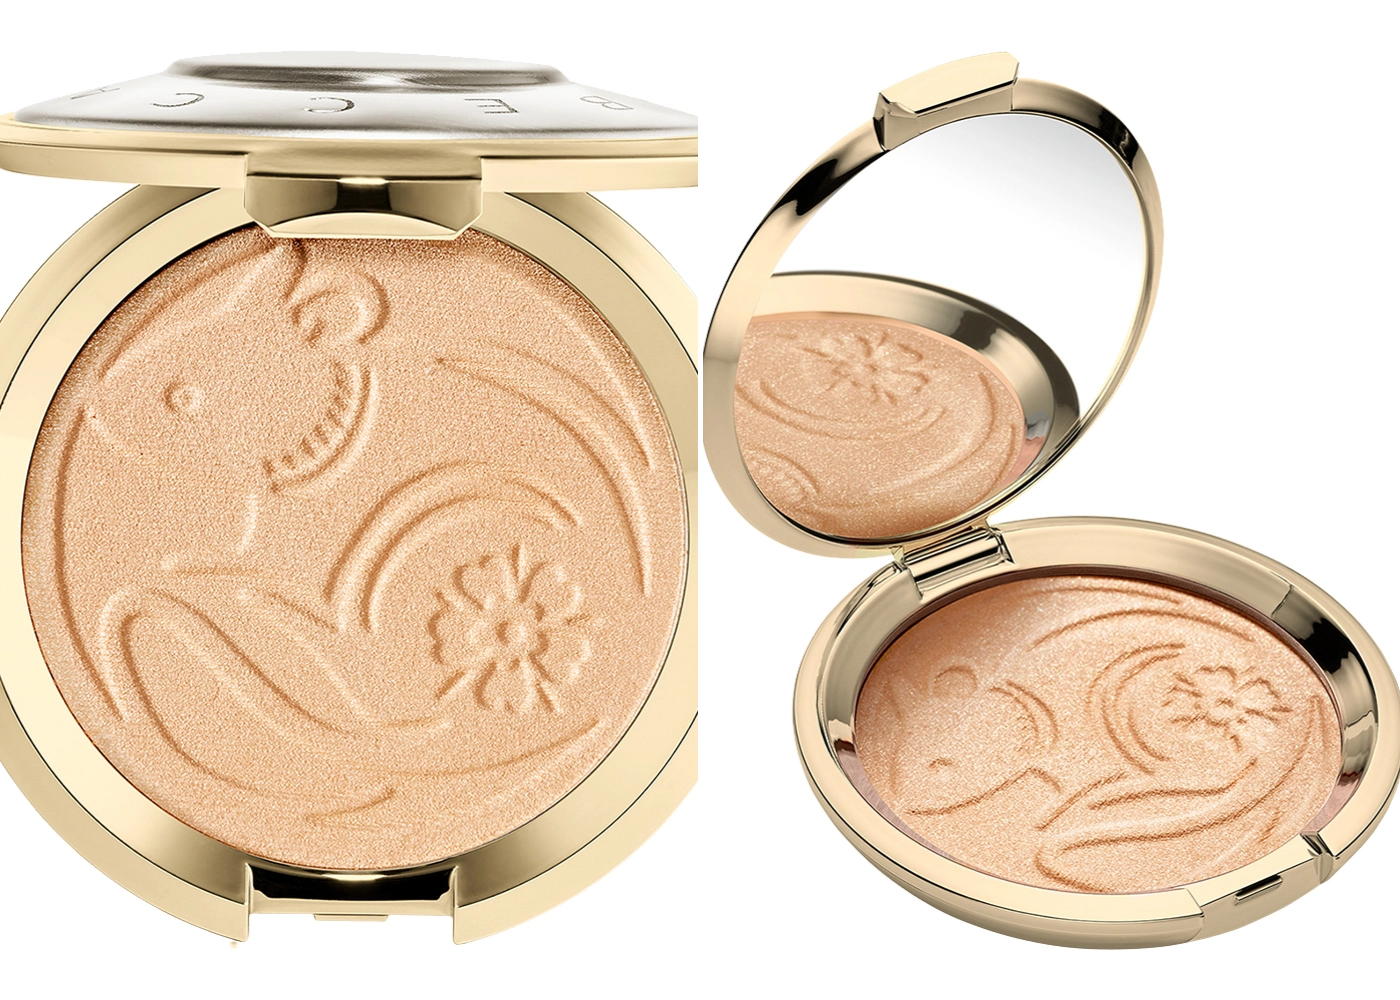 Becca highlighter | CNY beauty